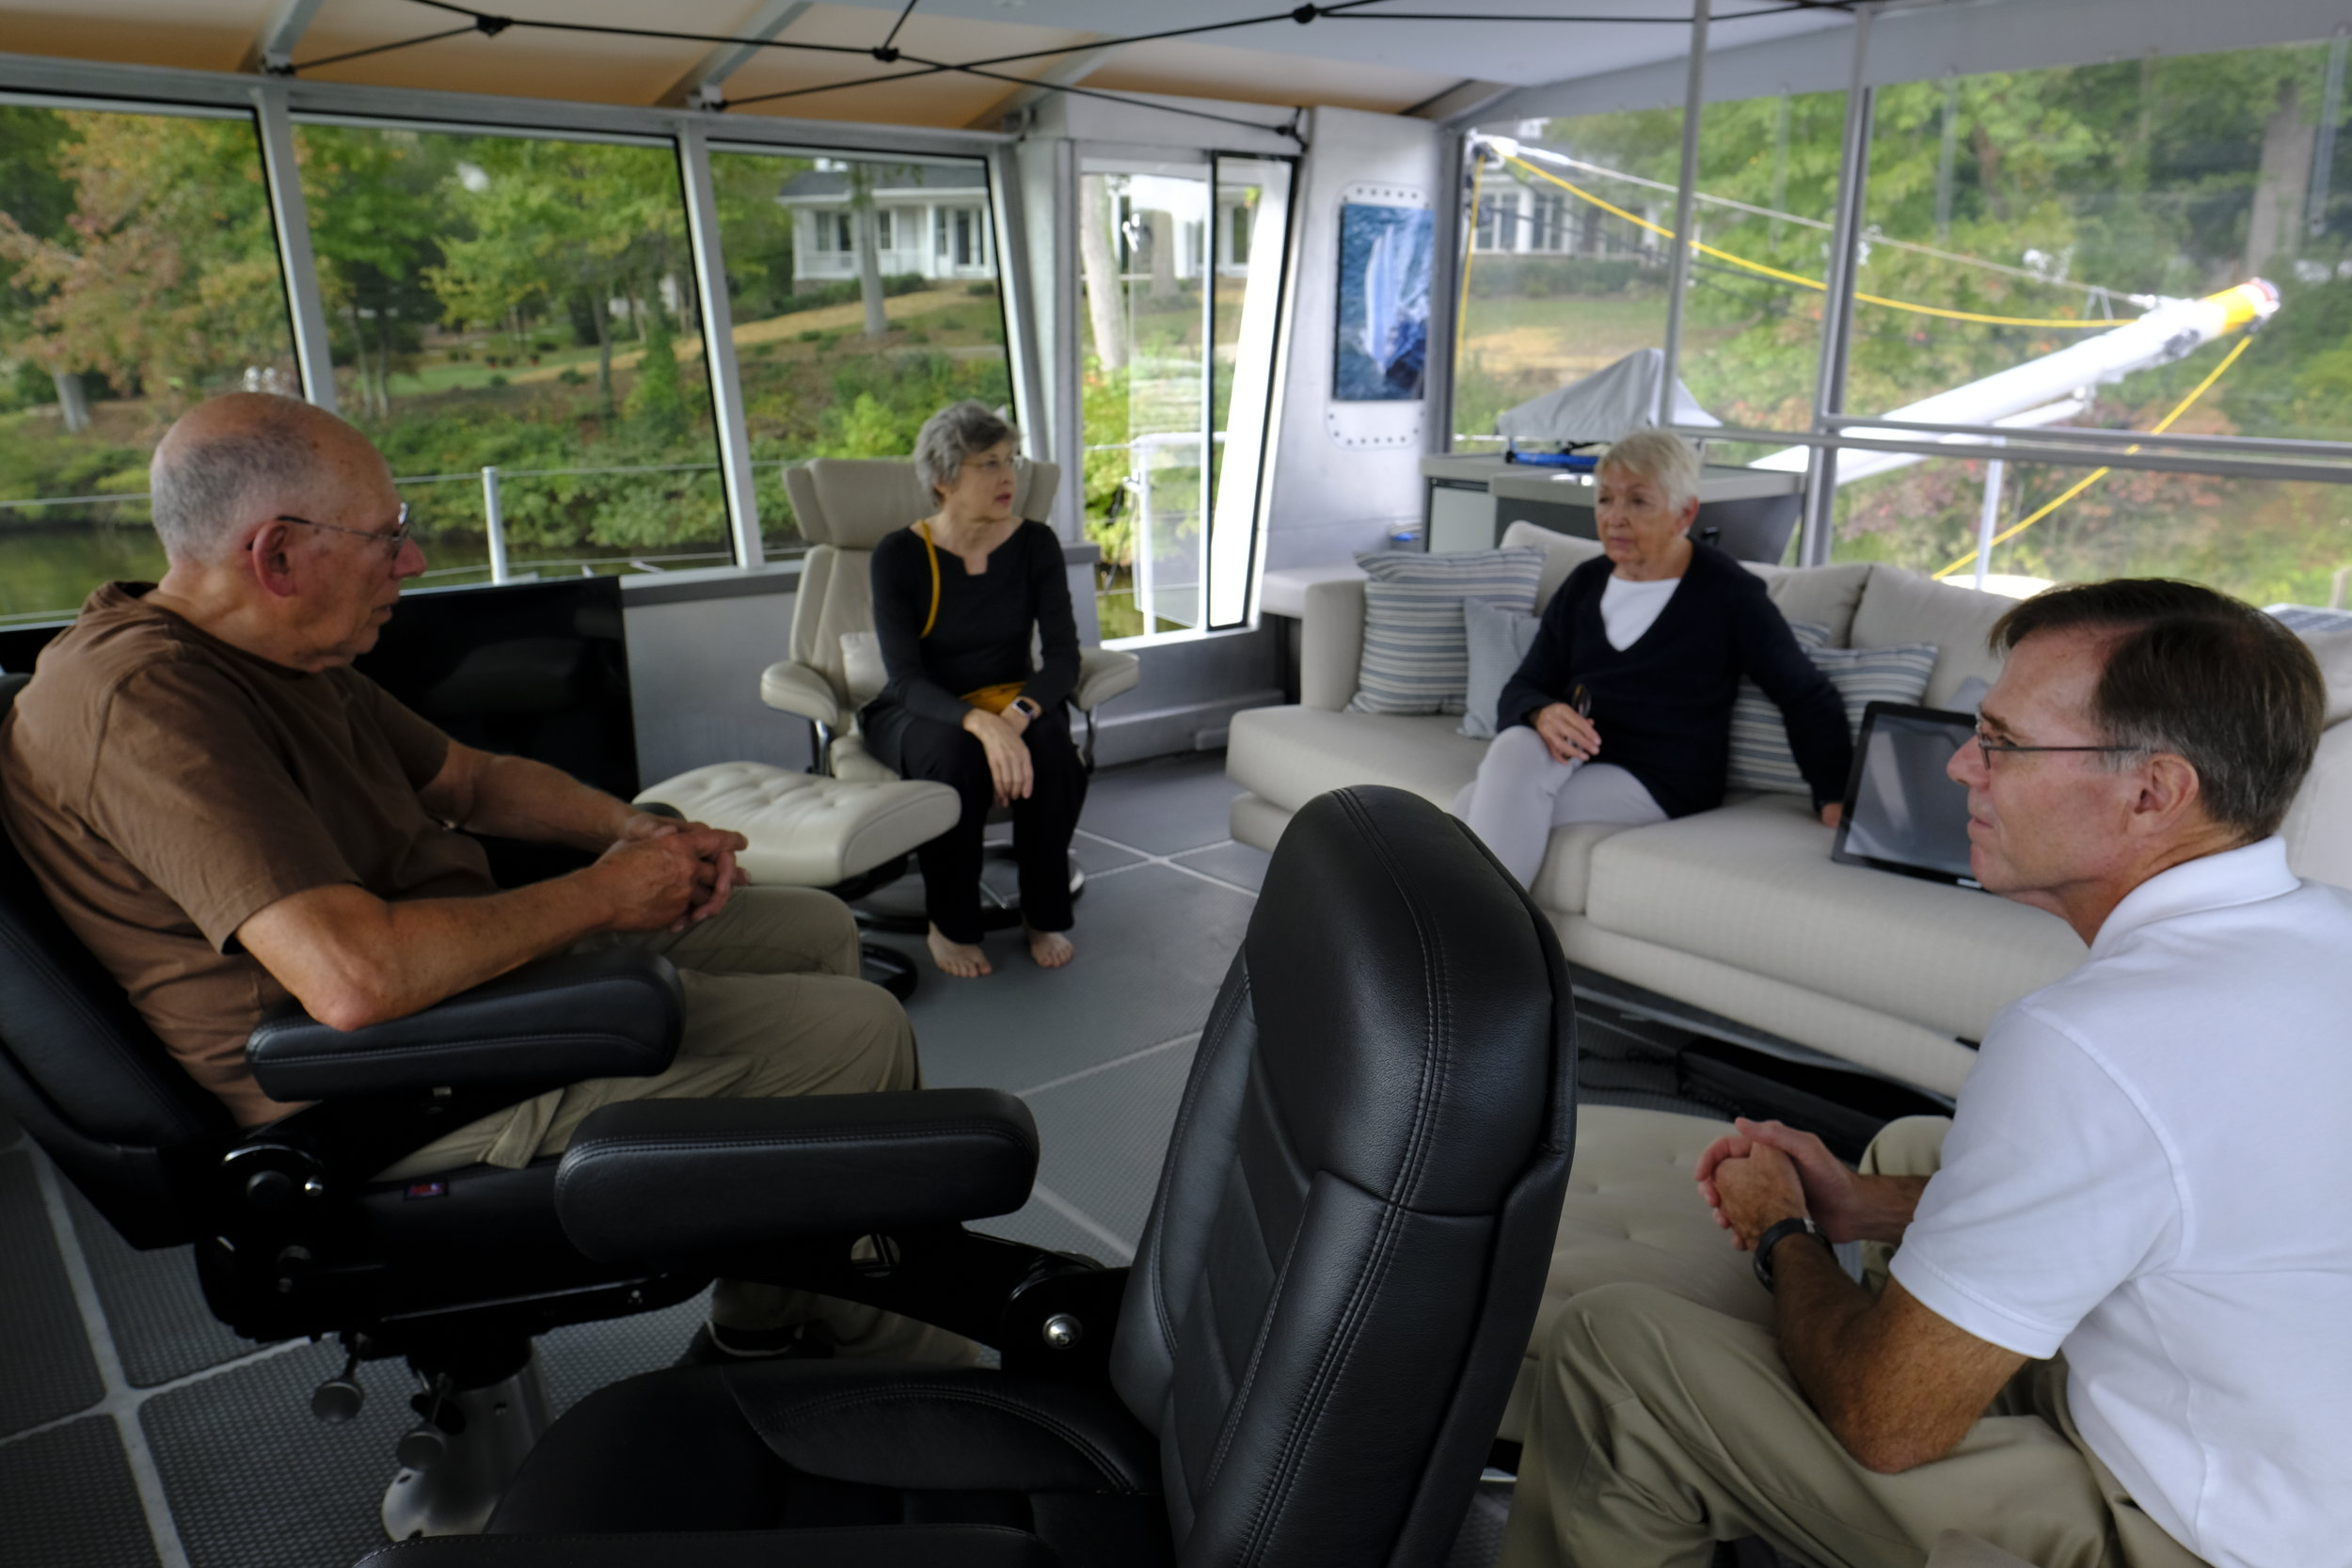 The roomy pilothouse during a visit by neighbors Bob and Janellen Frantz. Bob circumnavigated a few years ago with his son aboard their Hallberg-Rassy sailboat. They were impressed by the many innovative details on the 78-foot FPB.